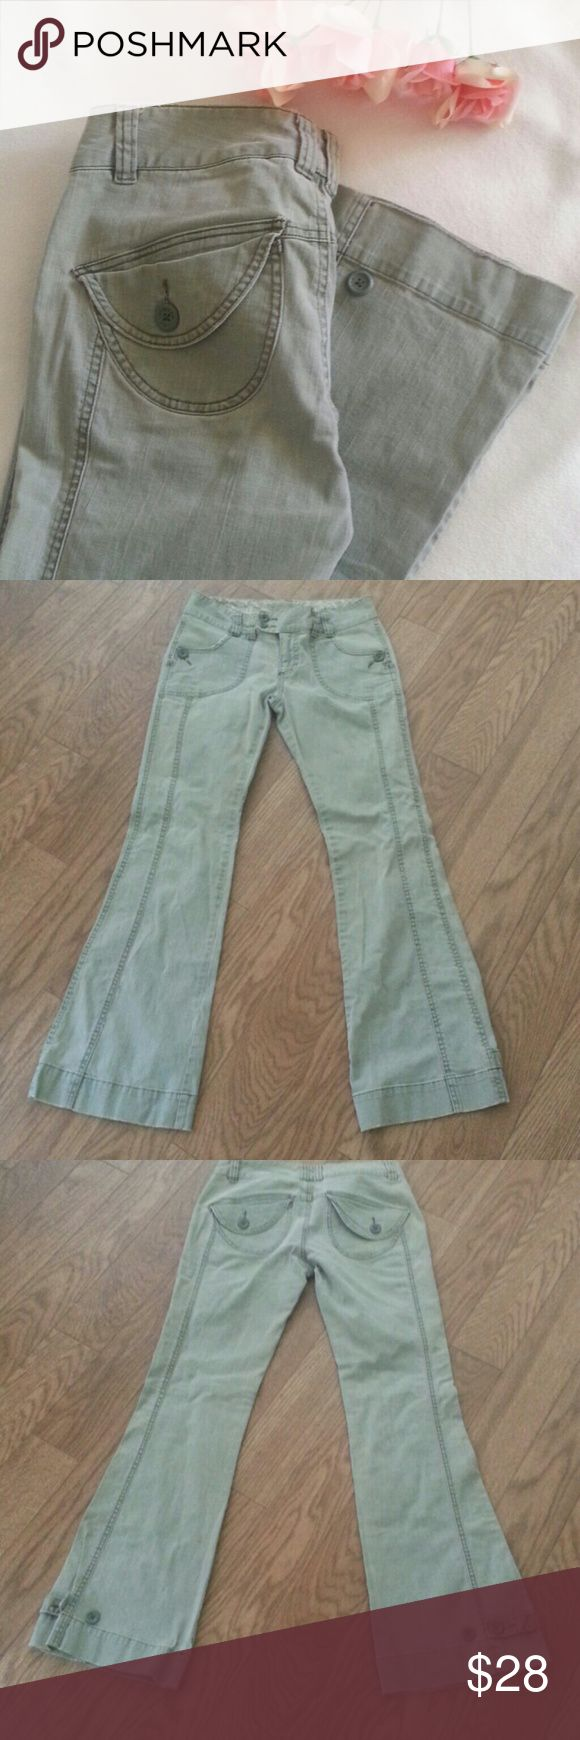 "American Eagle Canvas Pants 4 Very good condition  Size 4 Greenish gray color Waist 30.5"" Hips 36"" Inseam  31"" One bottom at inside one is missing but not affecting the waist closer American Eagle Outfitters Pants Trousers"